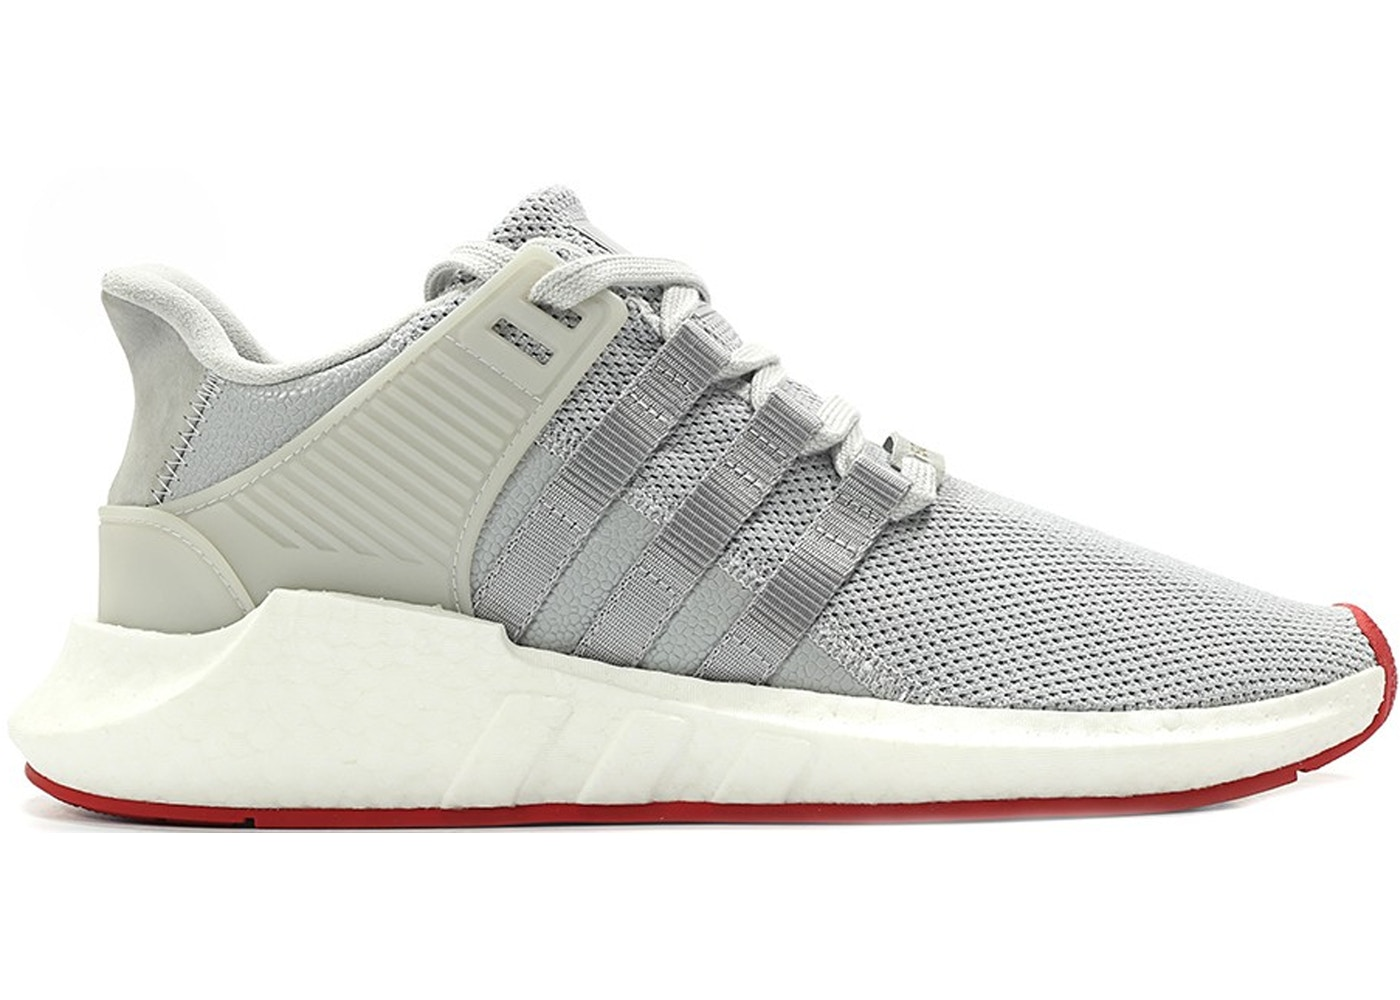 41a708d6e88 adidas EQT Support 93/17 Red Carpet Pack Grey